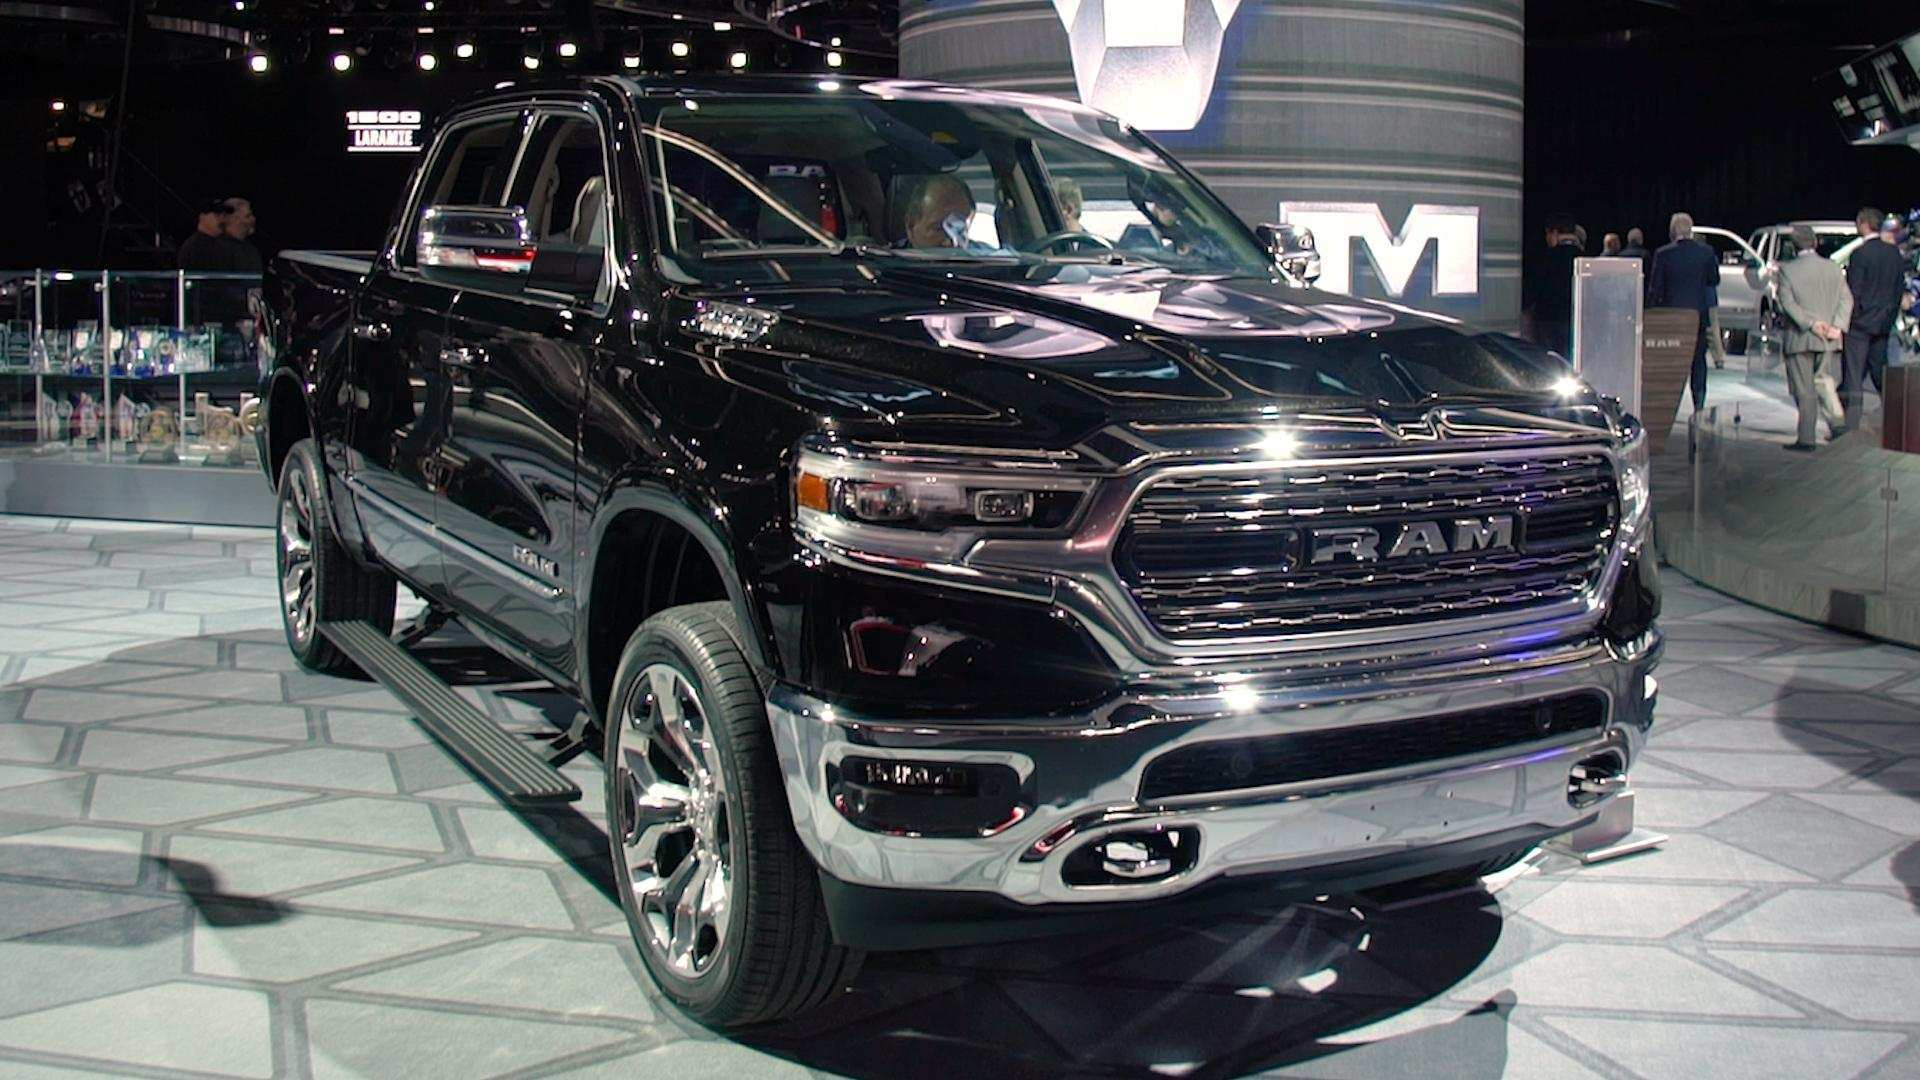 54 All New 2019 Dodge Truck 1500 Pricing by 2019 Dodge Truck 1500